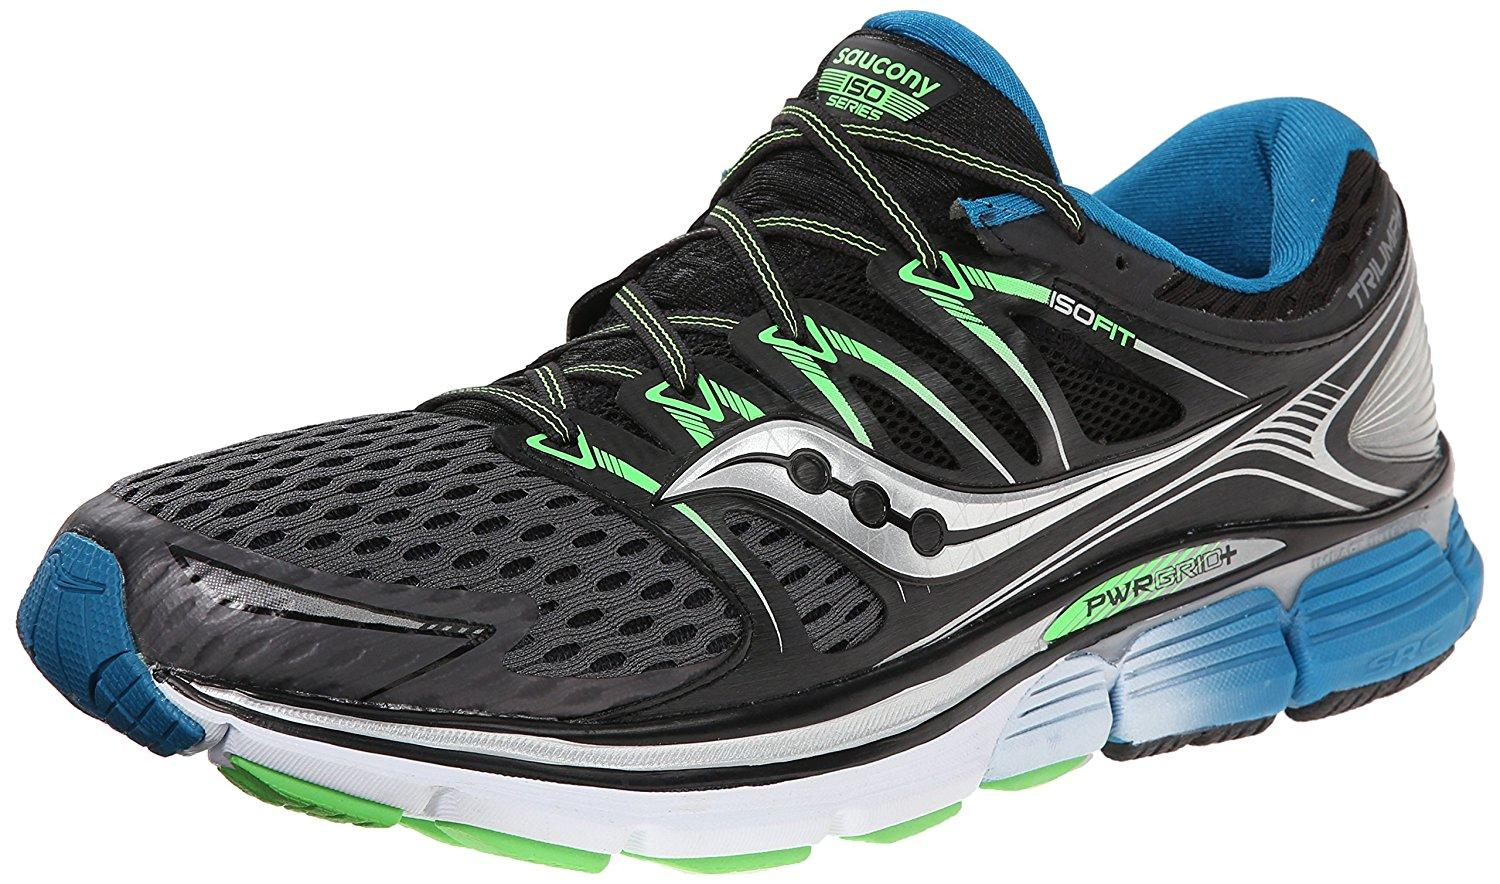 The Saucony Triumph ISO shown from front/side.